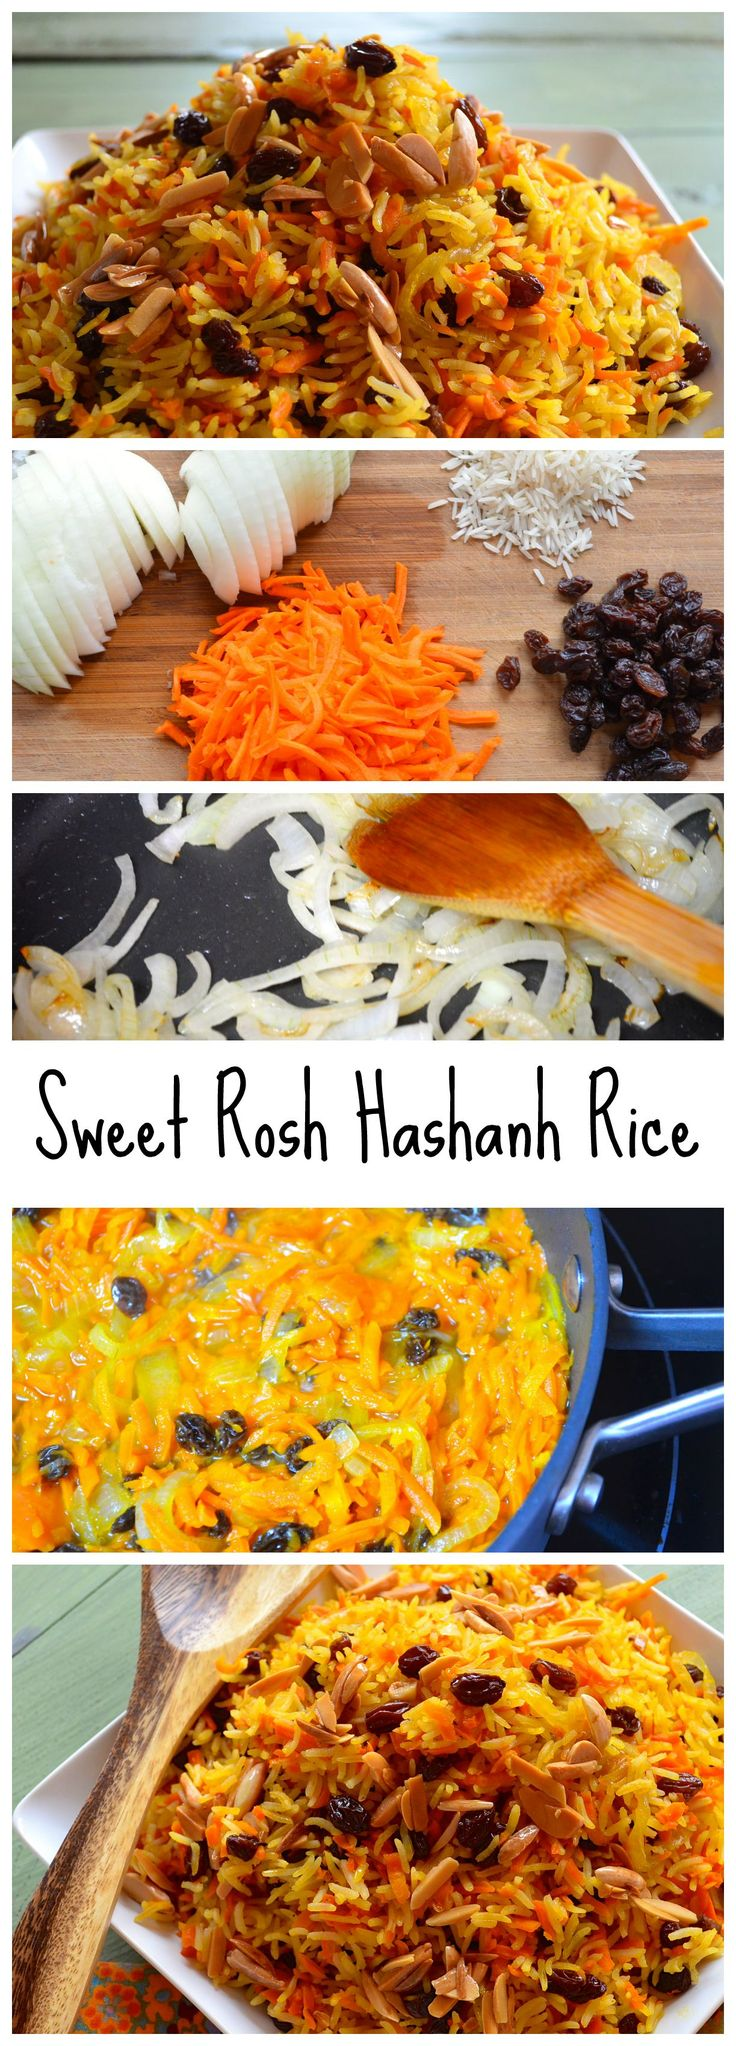 Sweet and fragrant basmati rice with carrots and raisins. The perfect vegetarian side dish for any holiday meal. In our house this is a Rosh Hashanah Favorite.